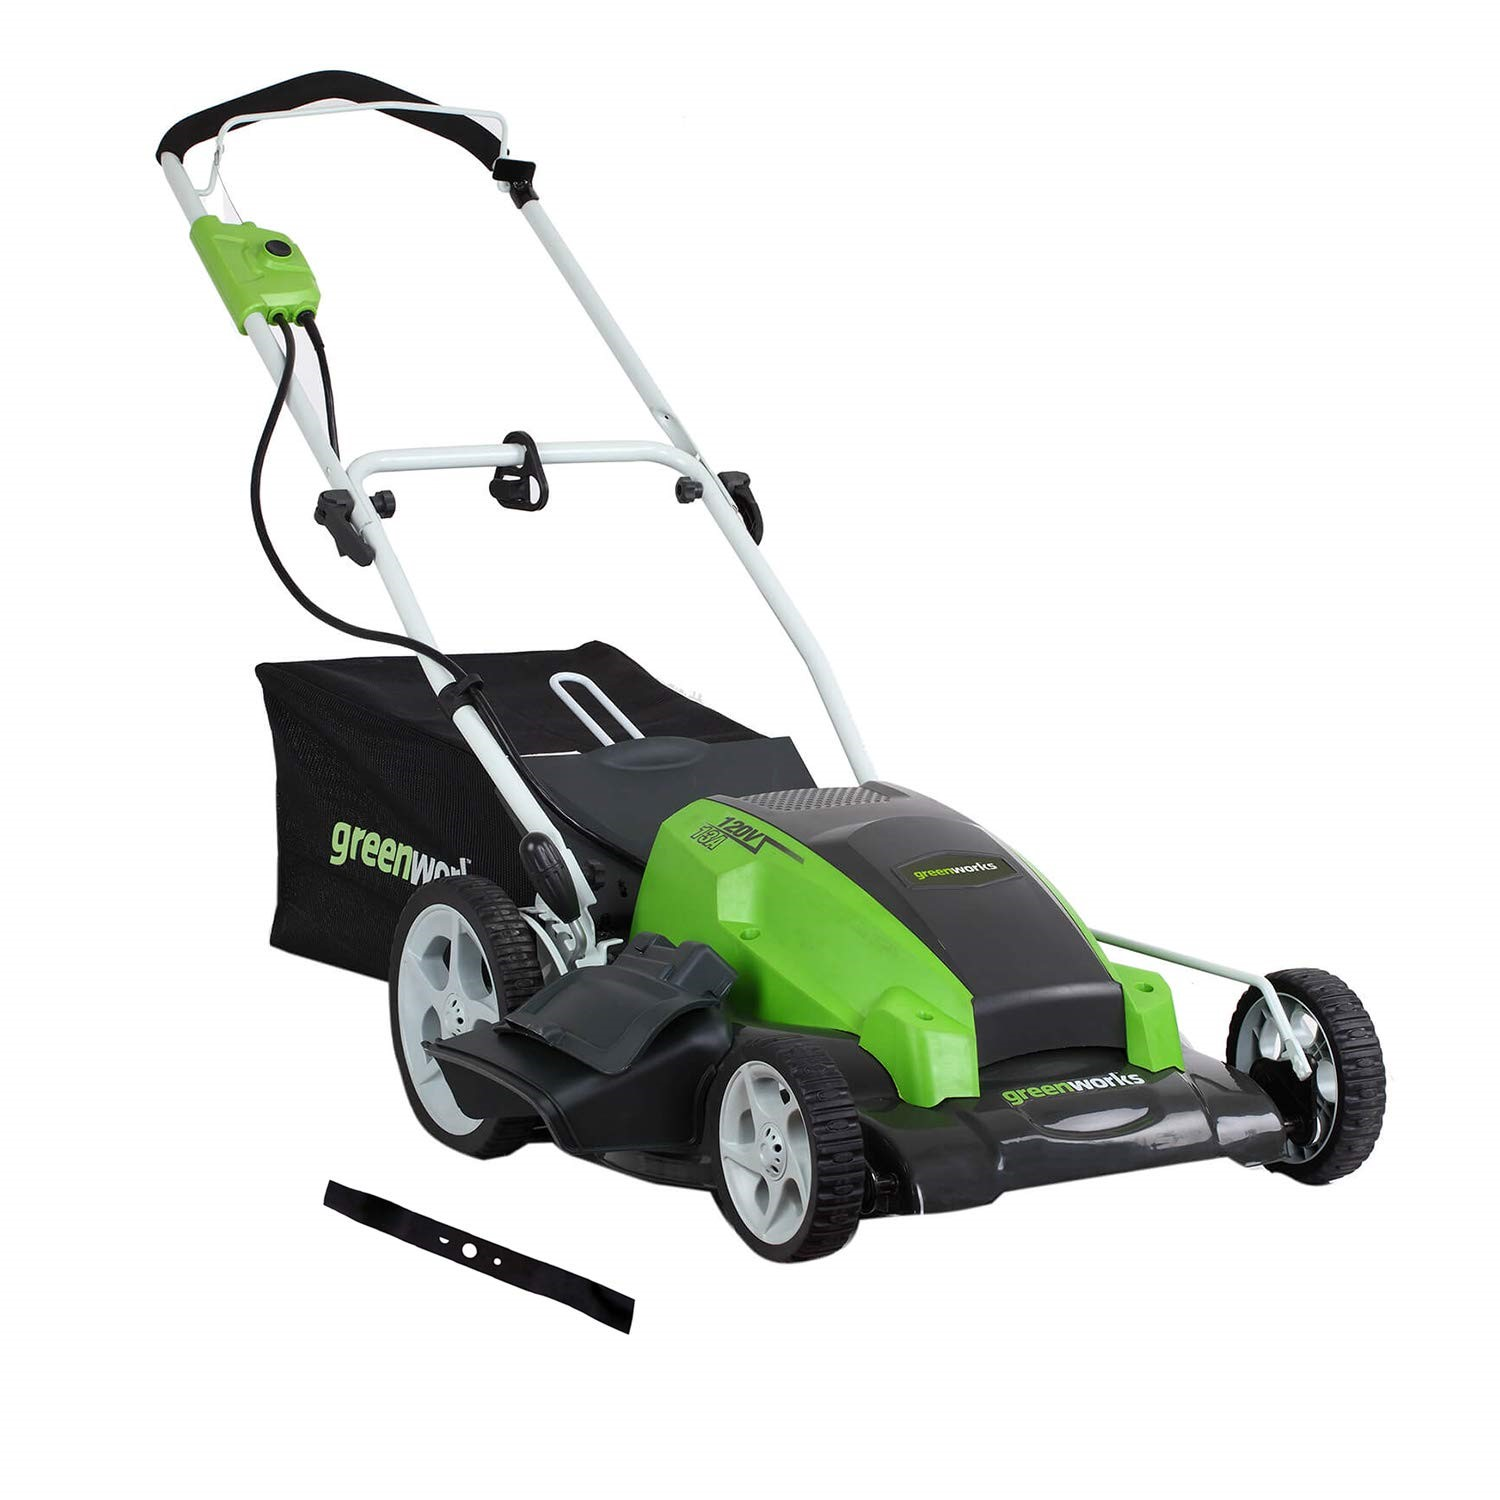 Greenworks 12 Amp Corded 18-Inch Lawn Mower 25012